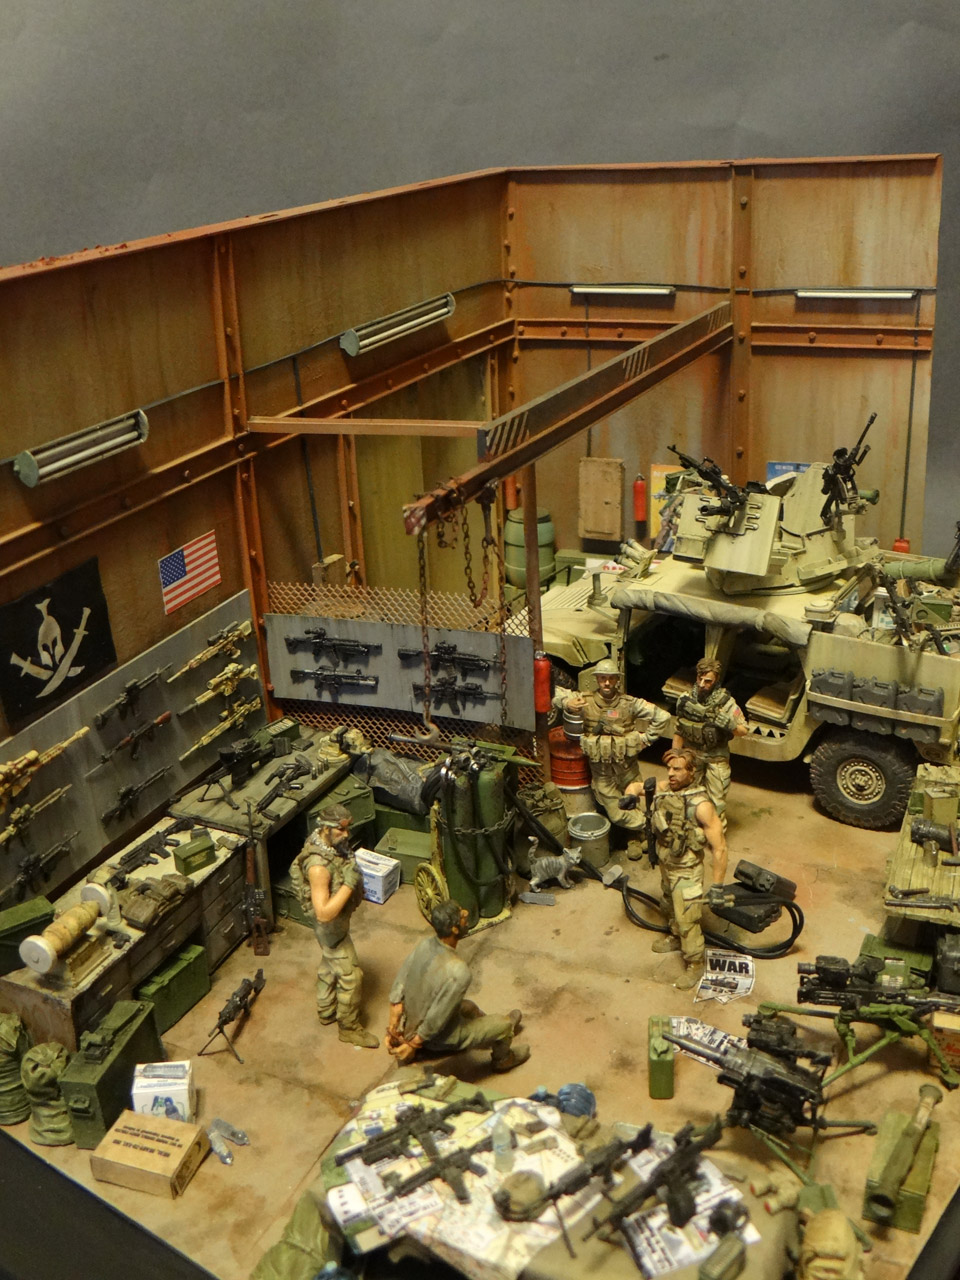 Dioramas and Vignettes: Enforcement to democracy, photo #9